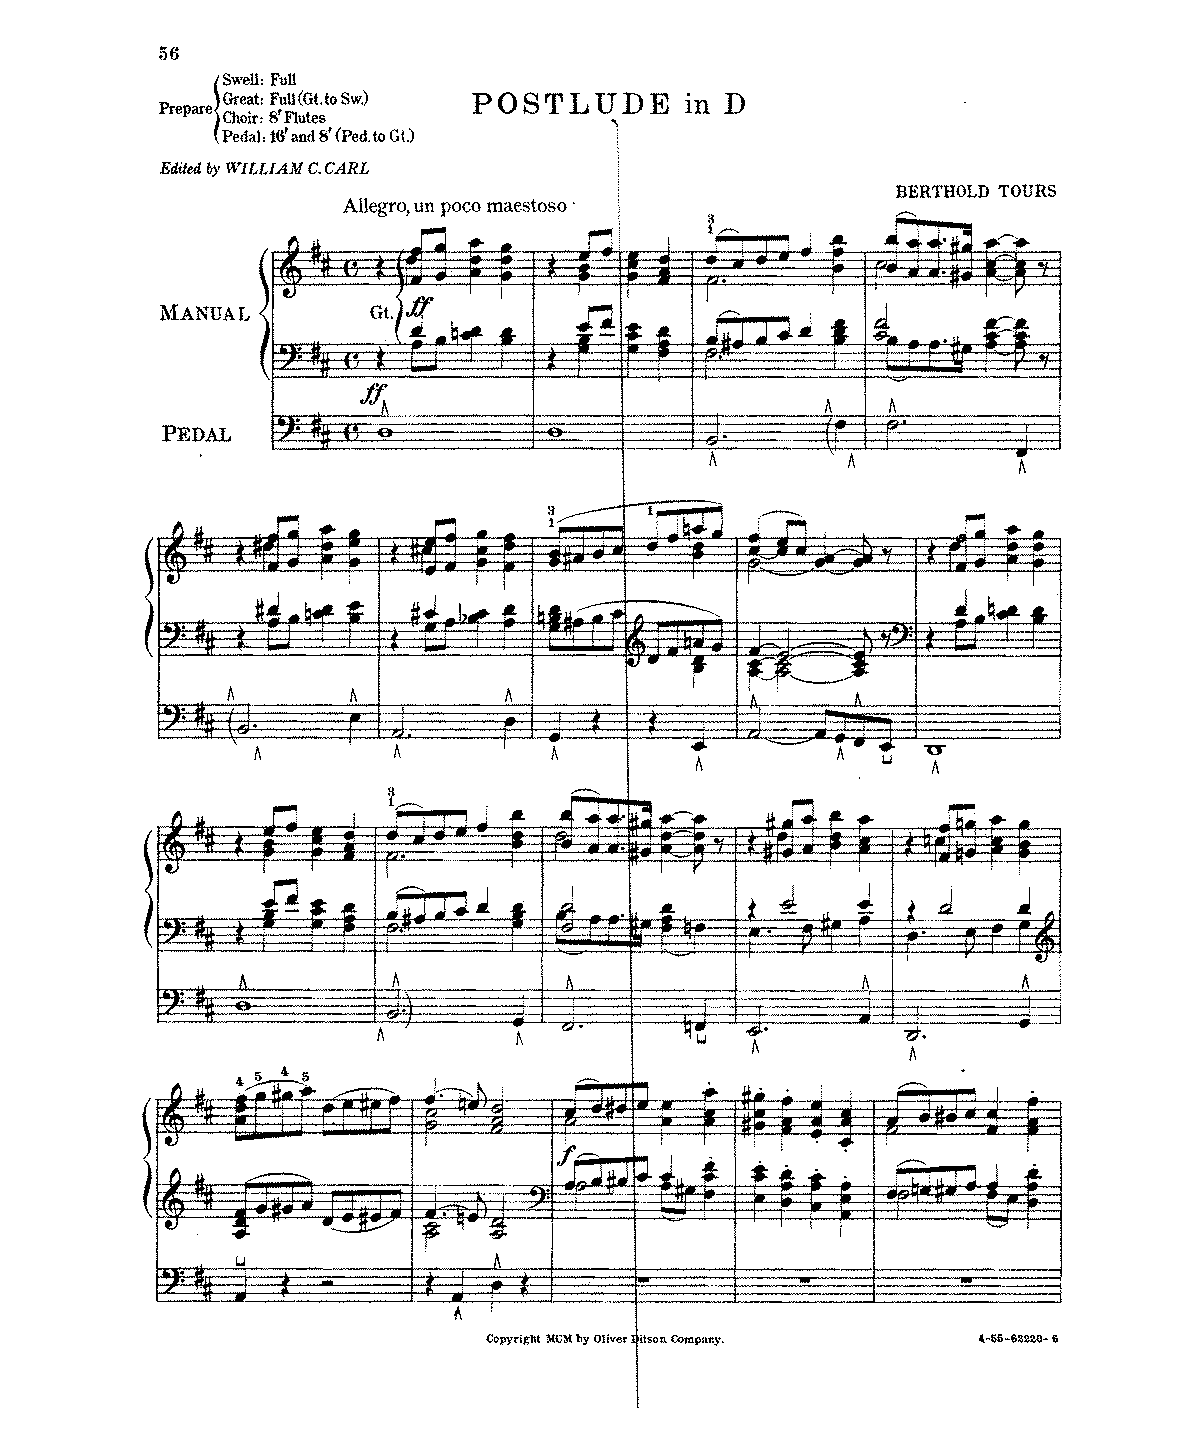 PMLP77207-Tours-Postlude in D major.pdf